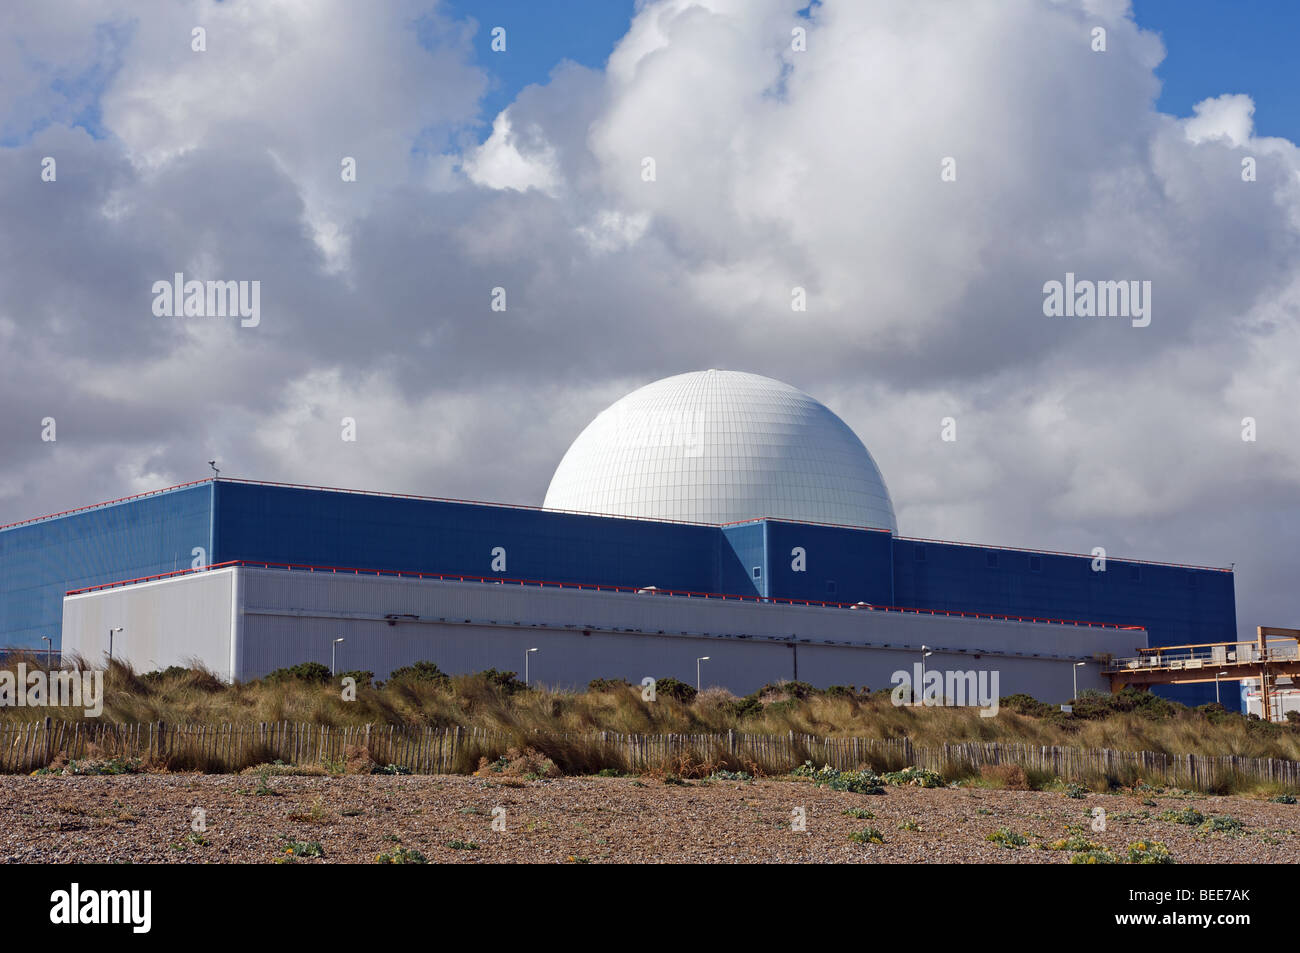 Sizewell B nuclear power station, Suffolk, UK. - Stock Image